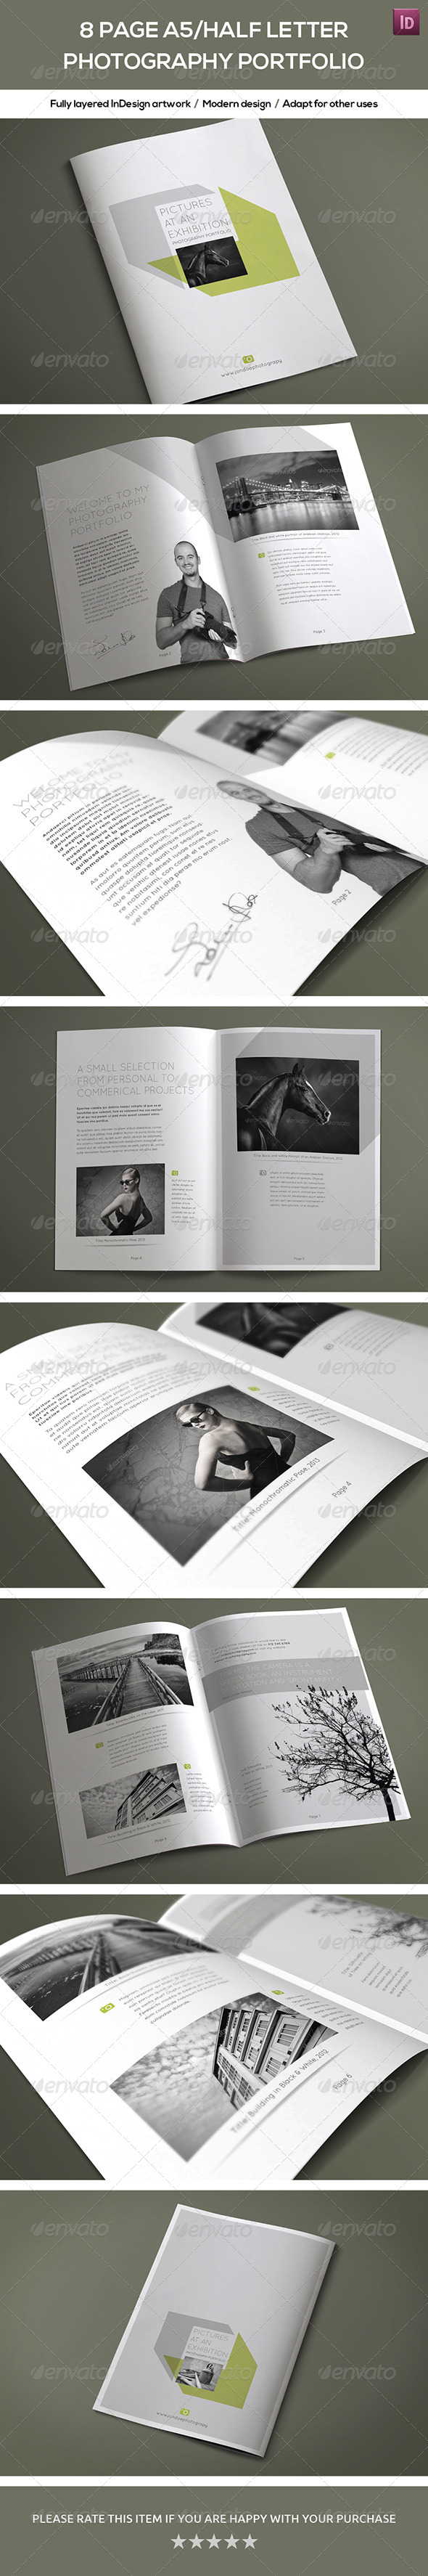 8 Page A5 Half Letter Photography Portfolio